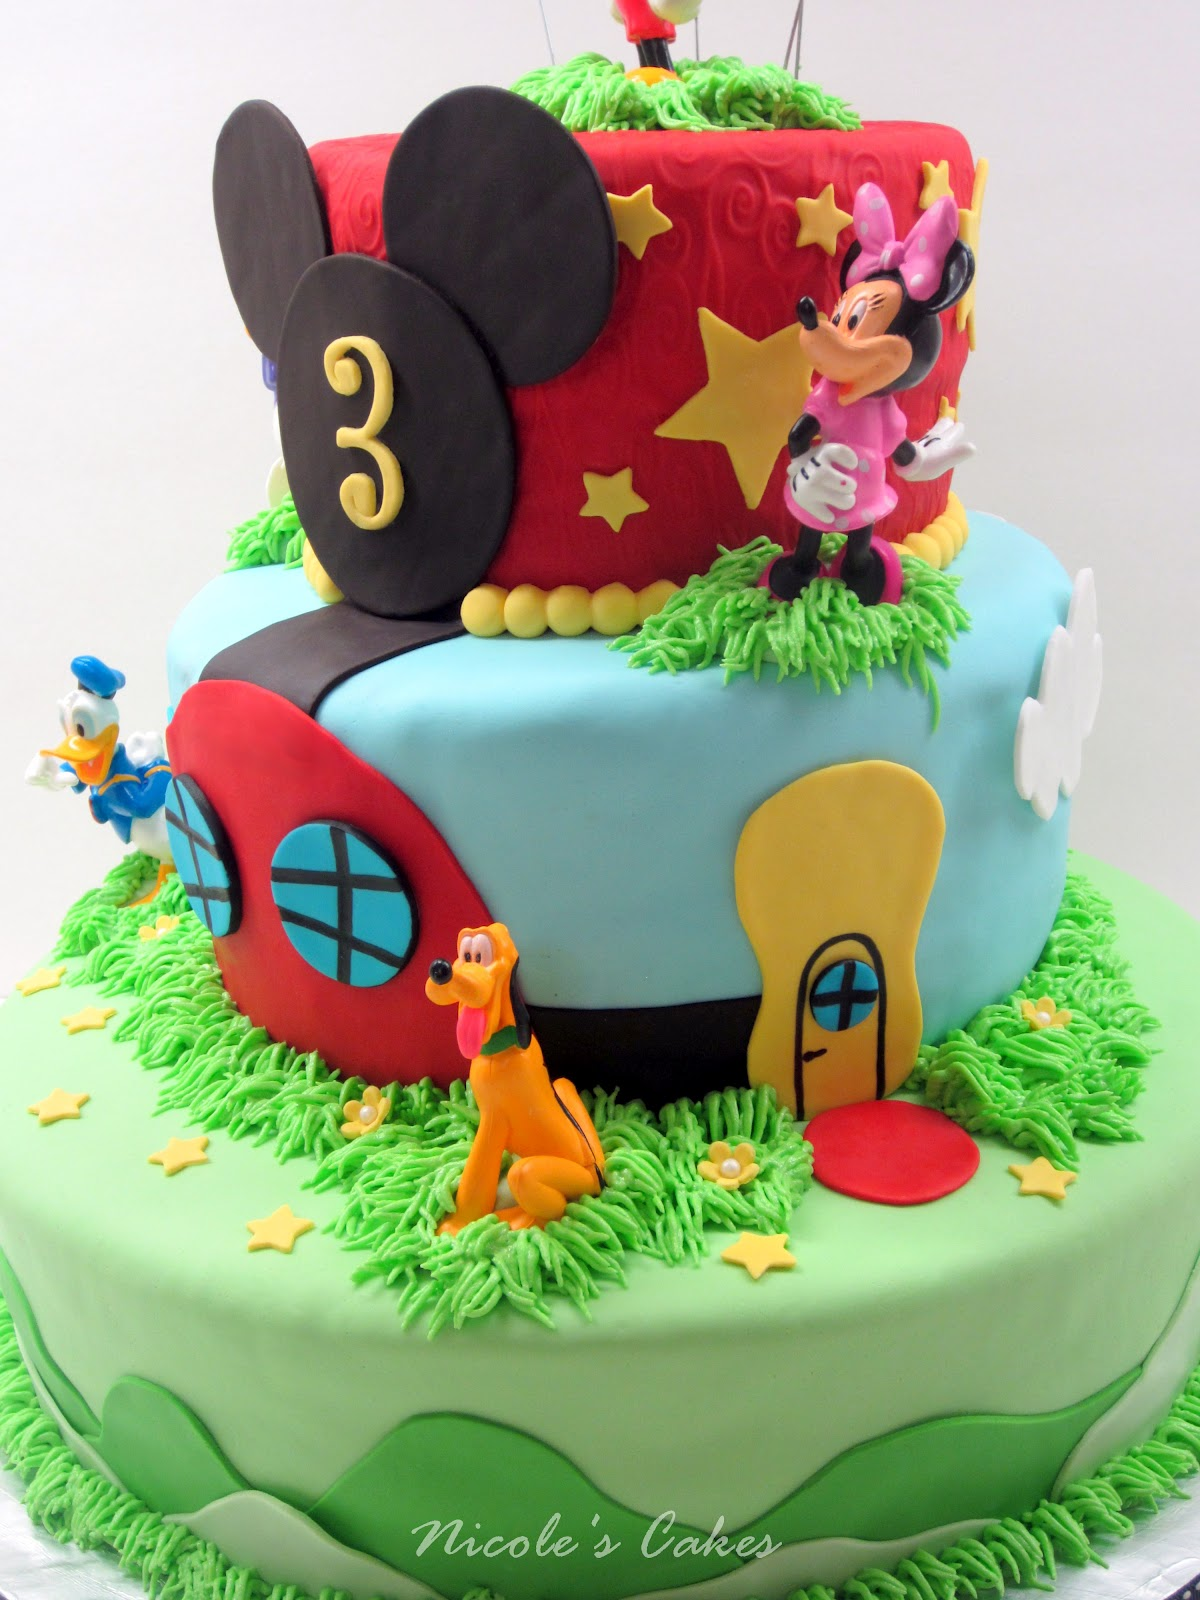 On Birthday Cakes Mickey Mouse Clubhouse 3 Tier Cake